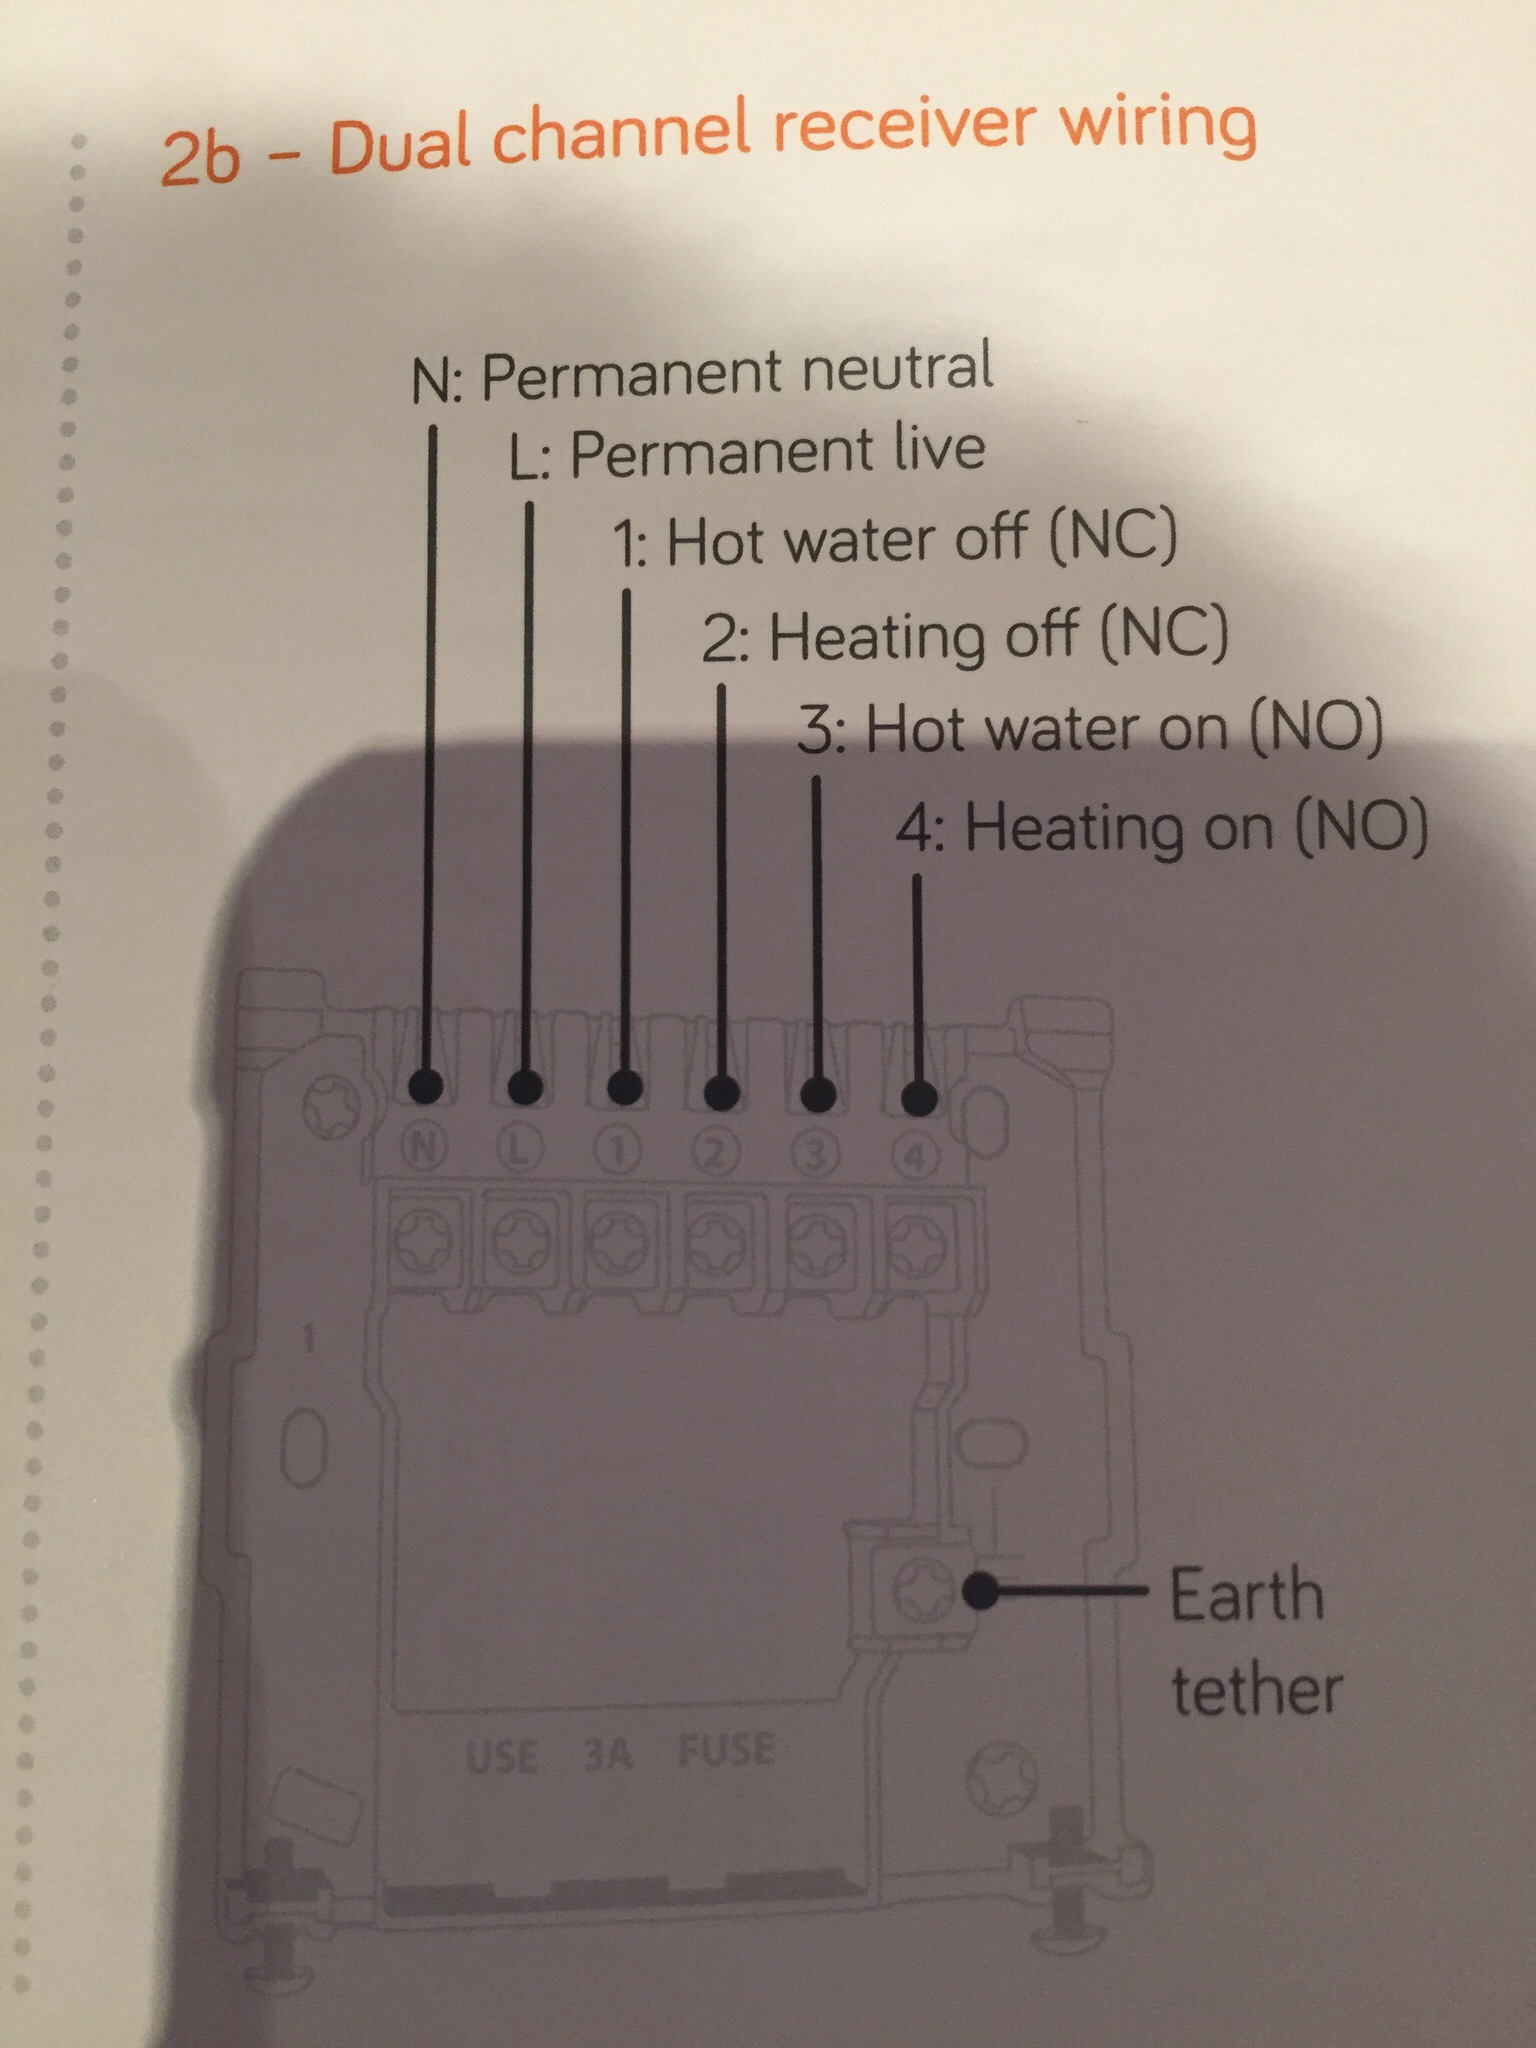 I want to replace my central heating hot water thermostat and wiring diagram for the hive receiver imageg cheapraybanclubmaster Gallery